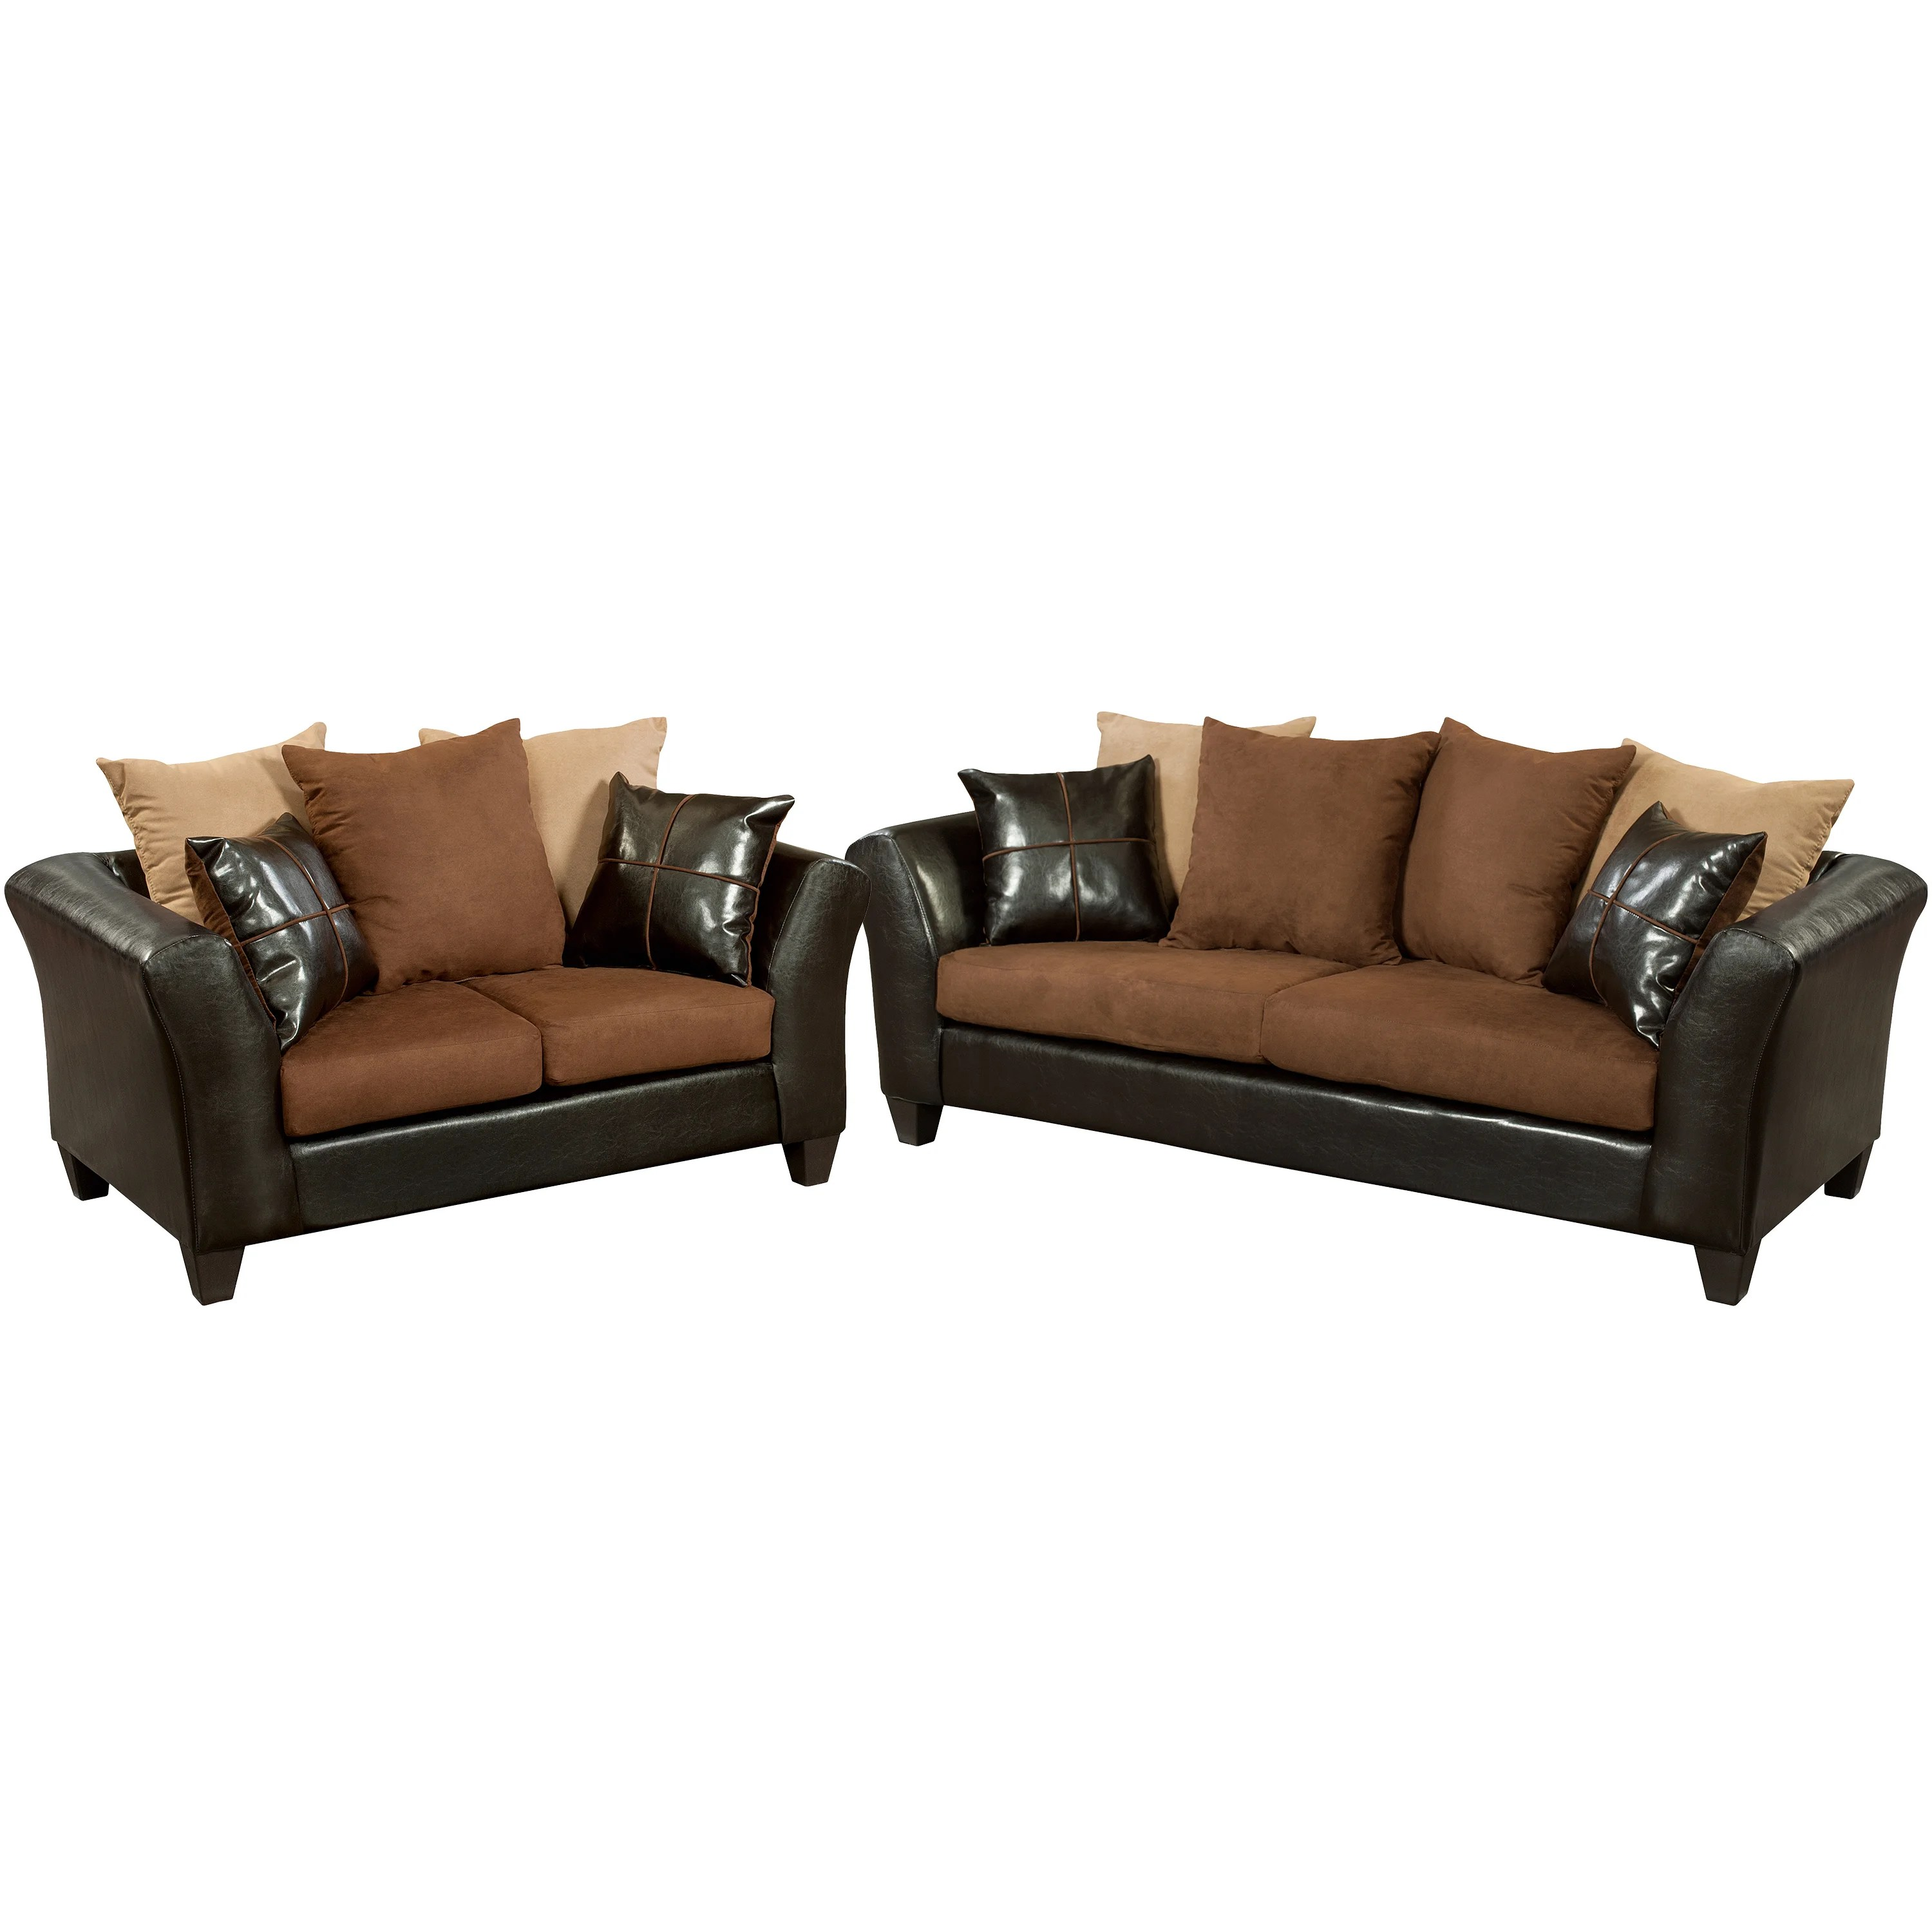 microfiber living room furniture chairs at fabindia shop riverstone set free shipping today